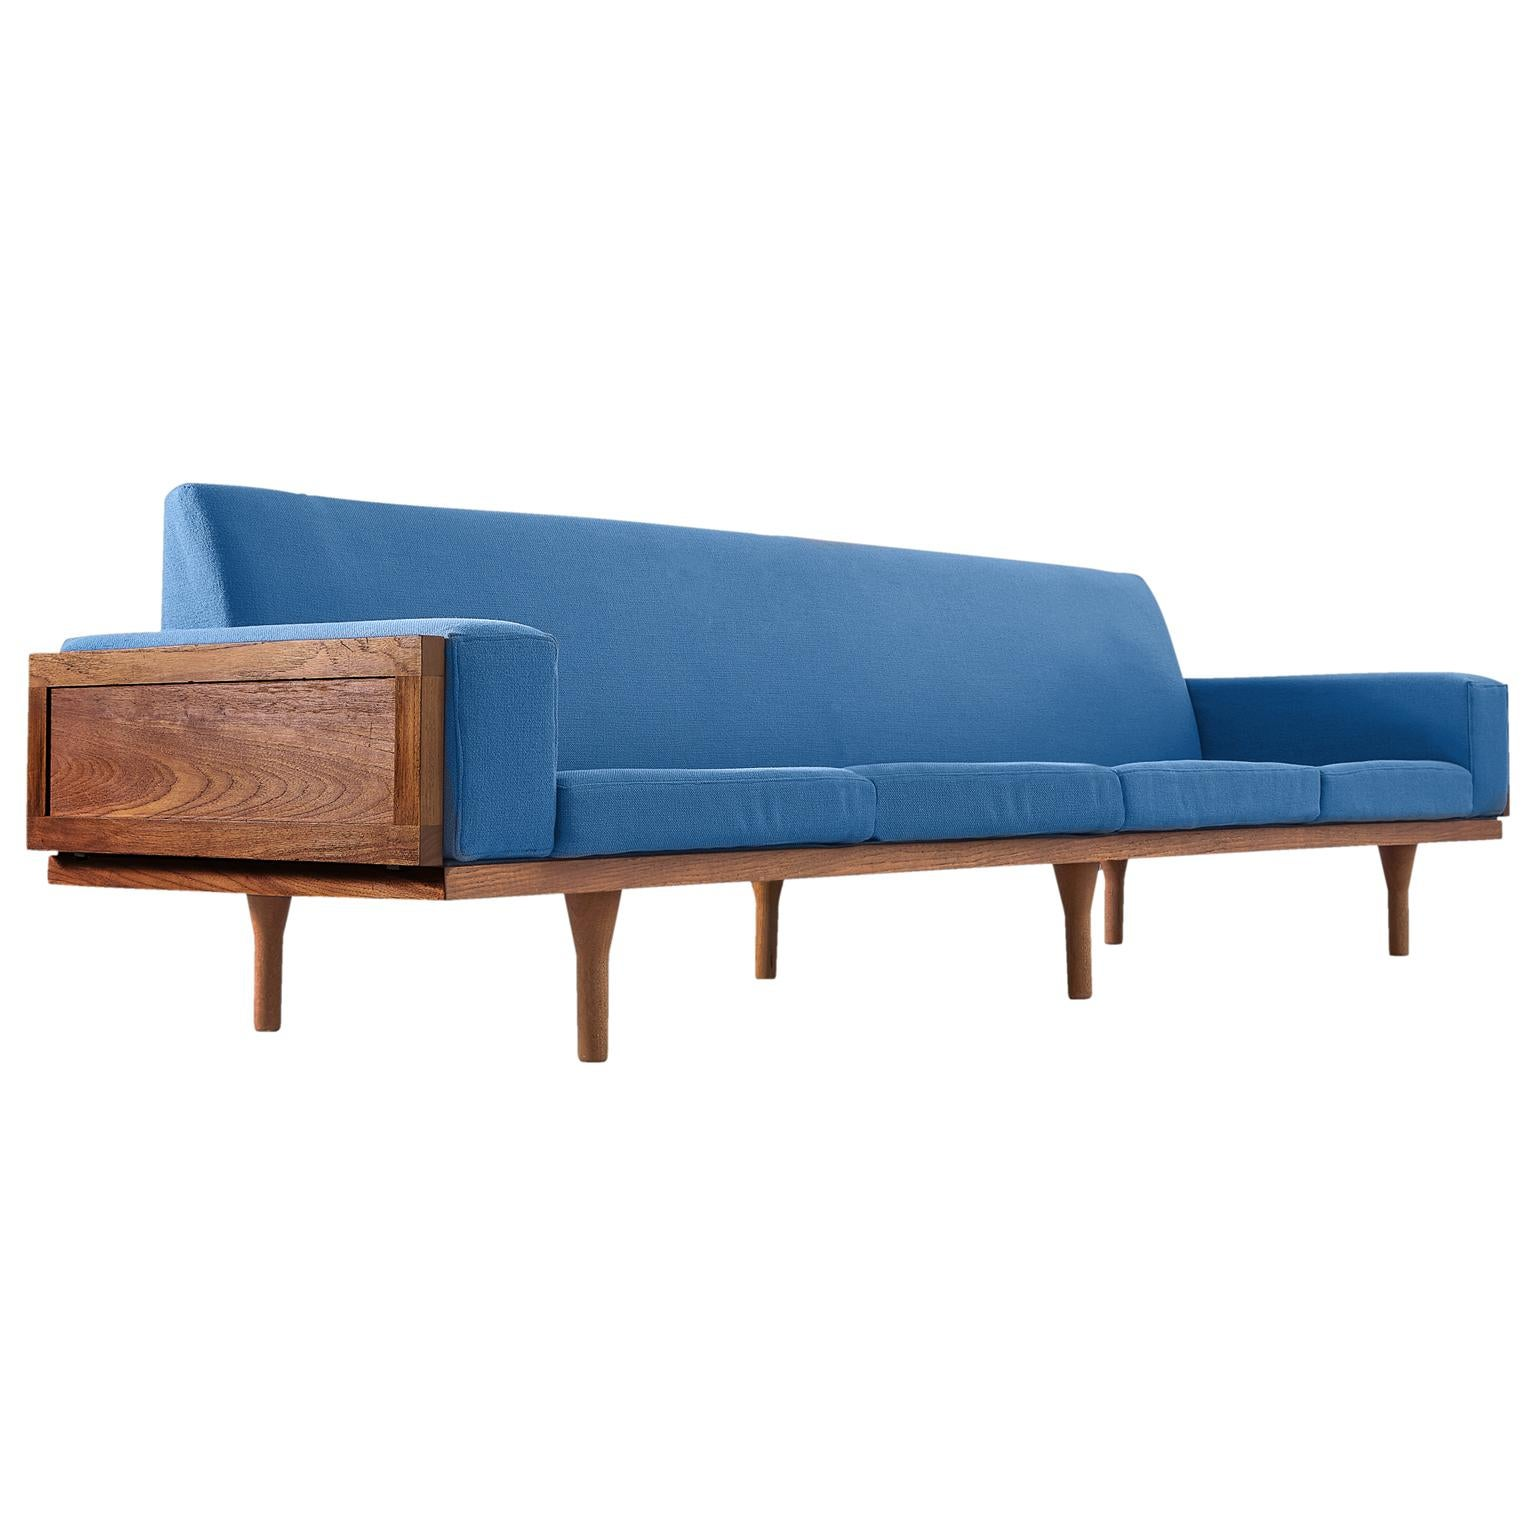 Antike Sofas Contemporary Søren Willadsen Furniture 26 For Sale At 1stdibs